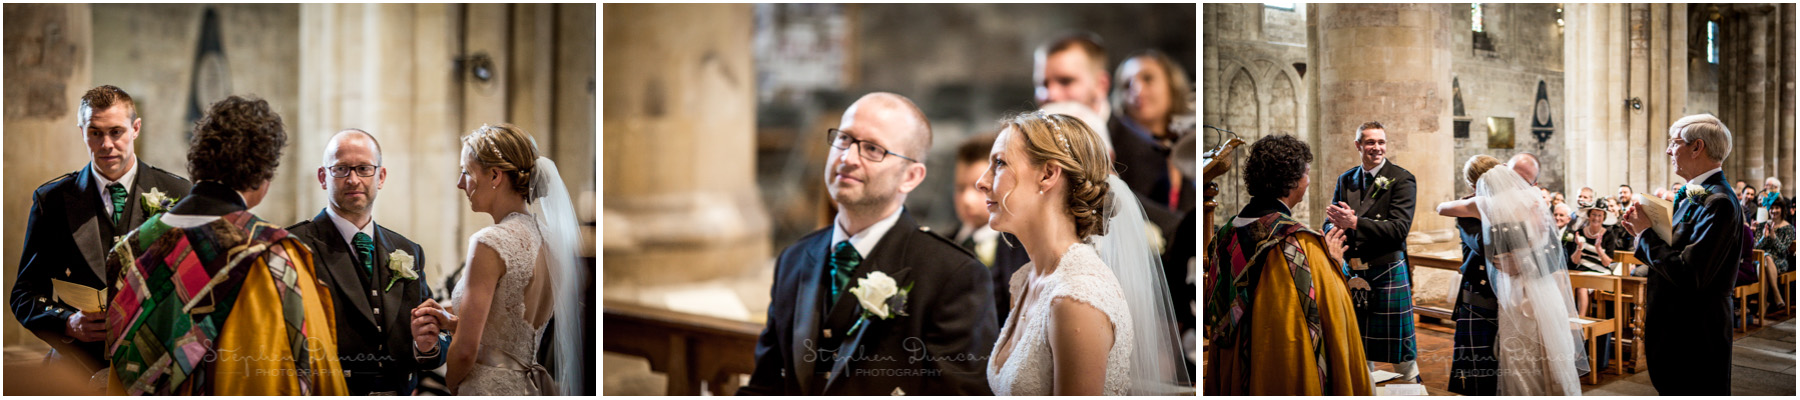 Romsey Abbey wedding photographer making the vows